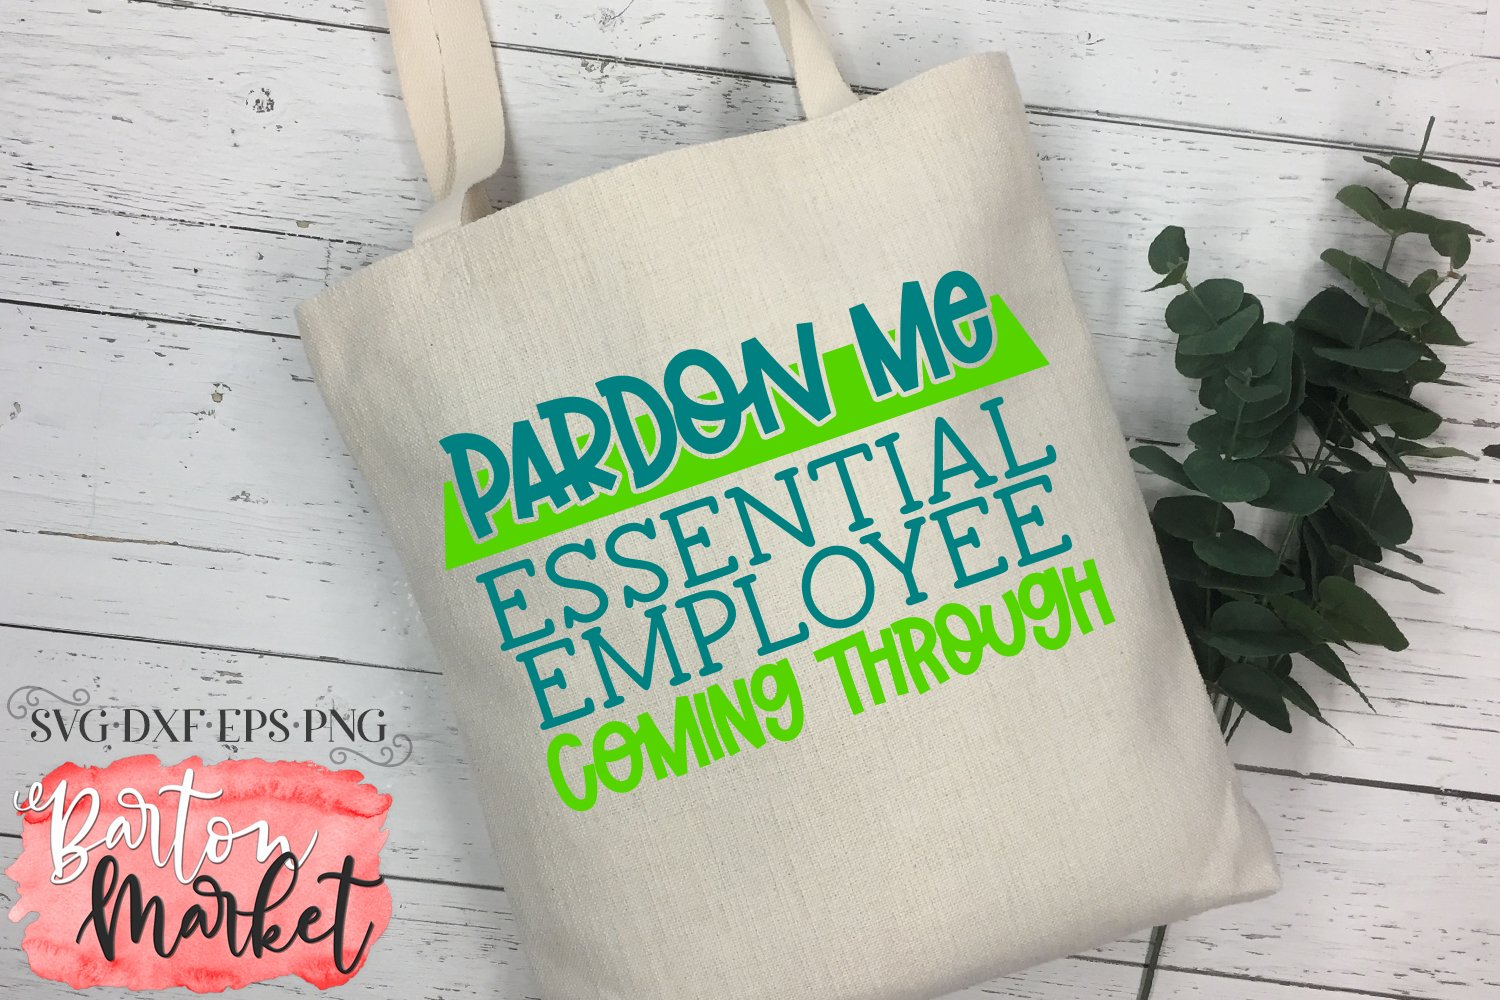 Pardon Me Essential Employee Coming Through SVG DXF EPS PNG example image 1